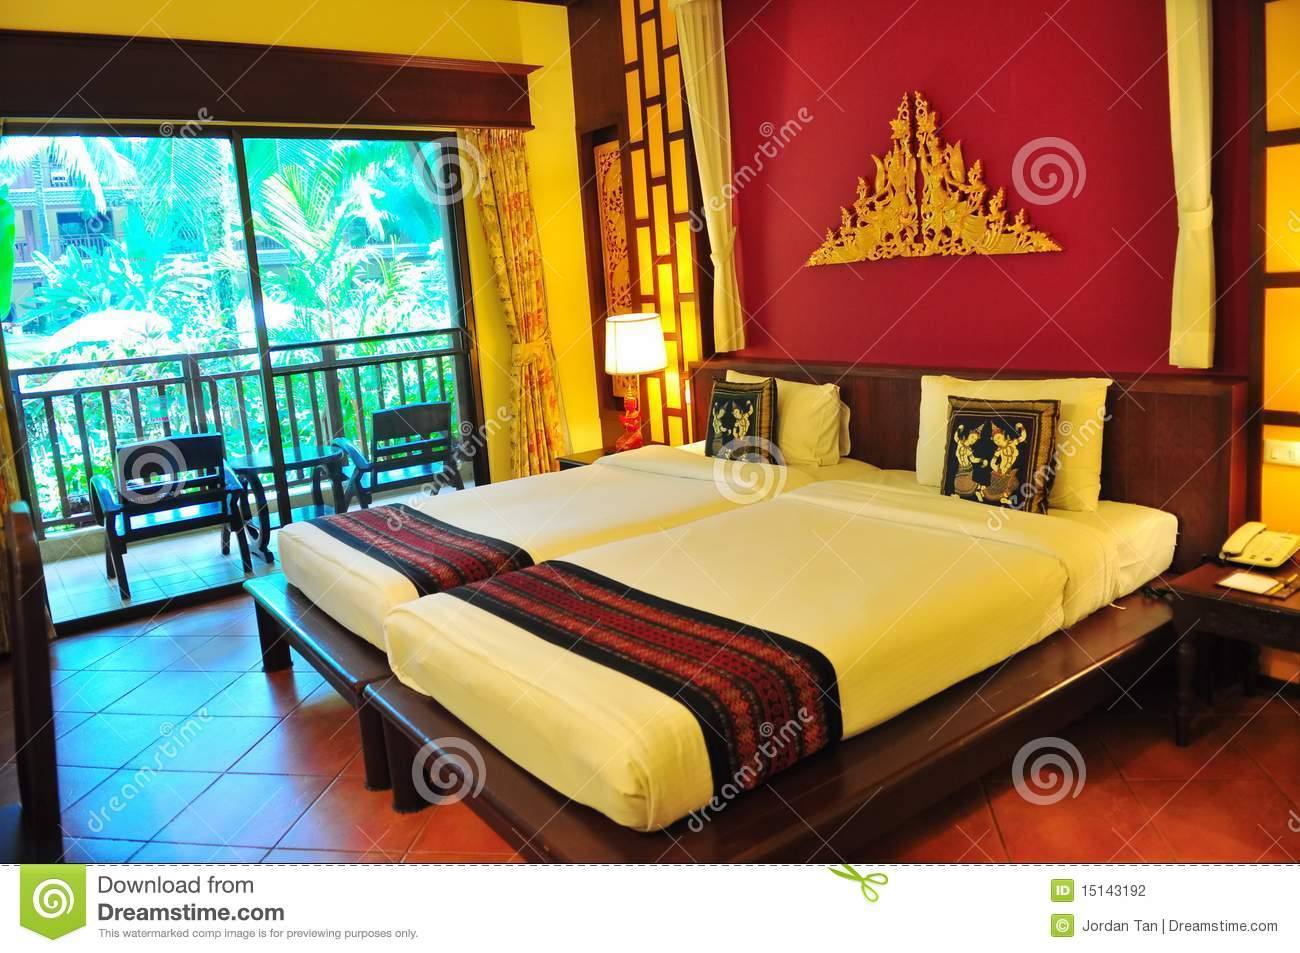 Hotel room with twin beds